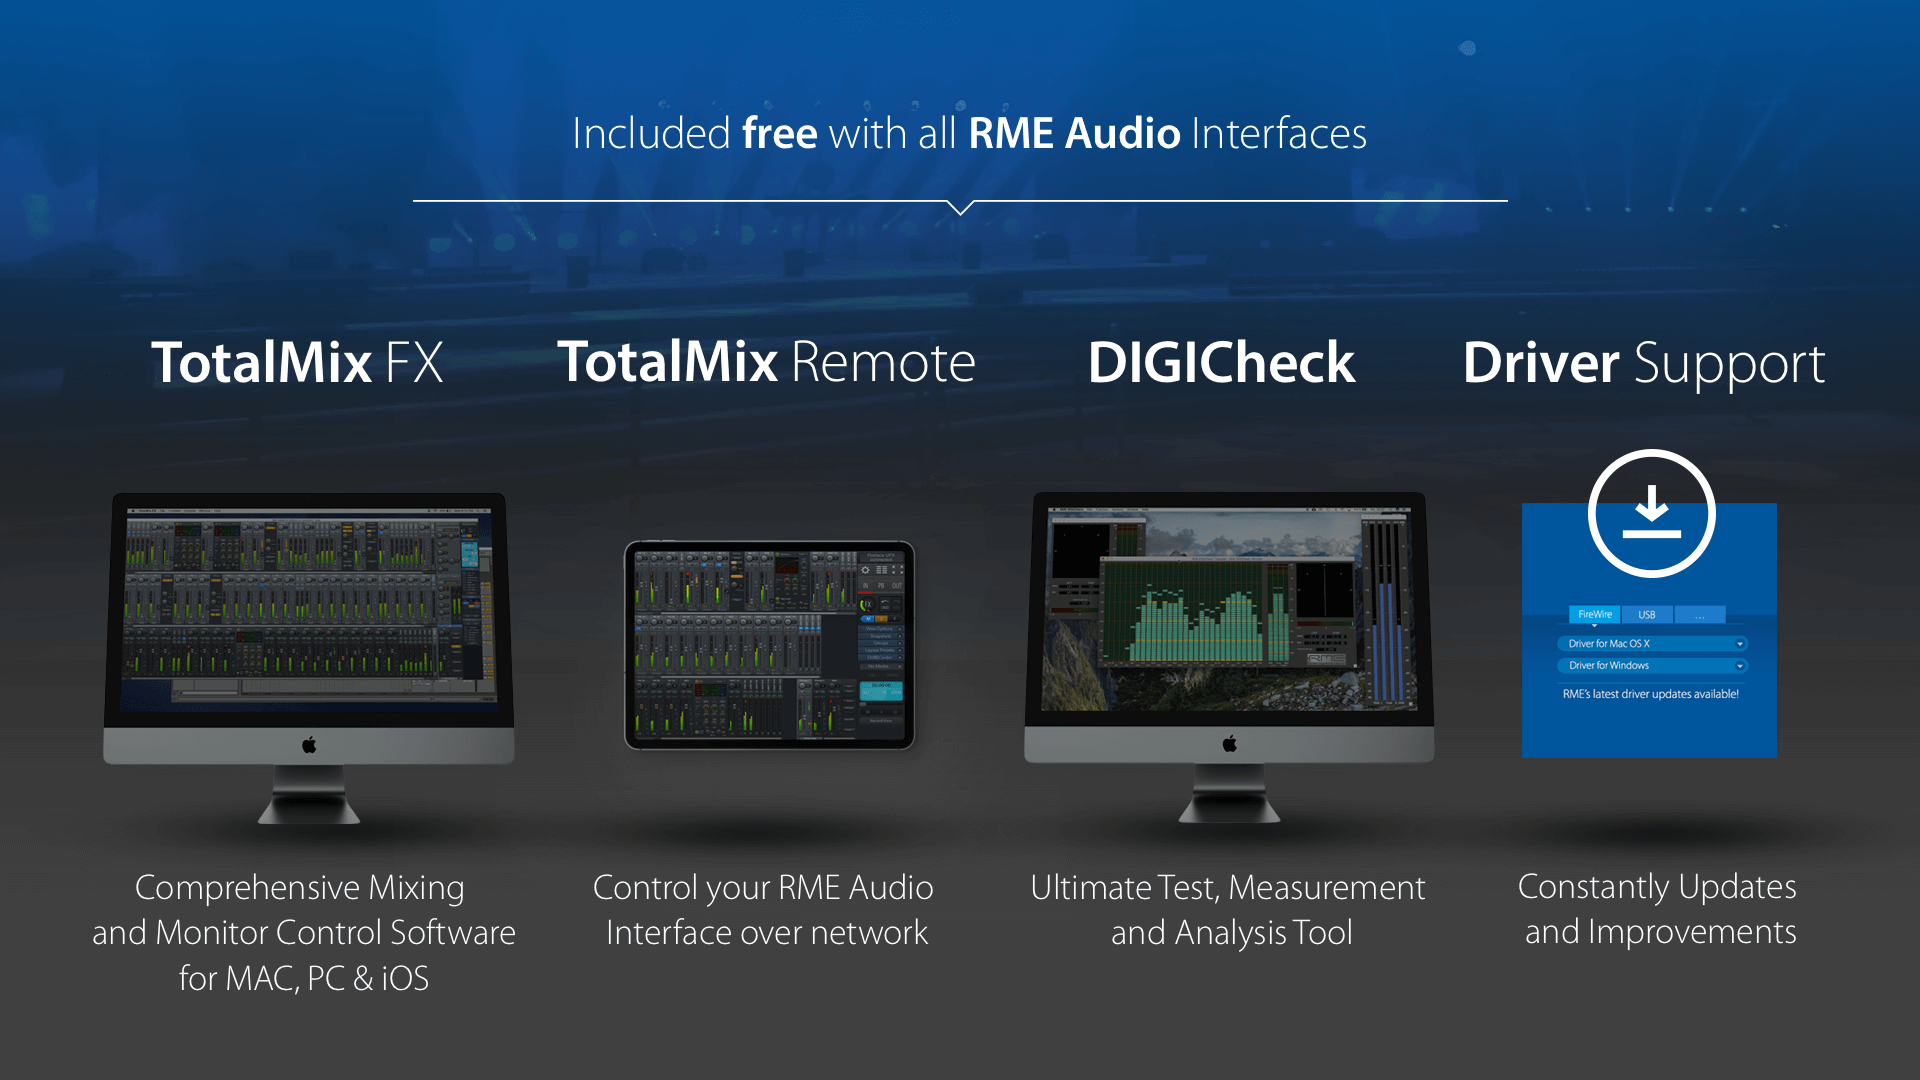 Free Software for all RME Audio Interfaces